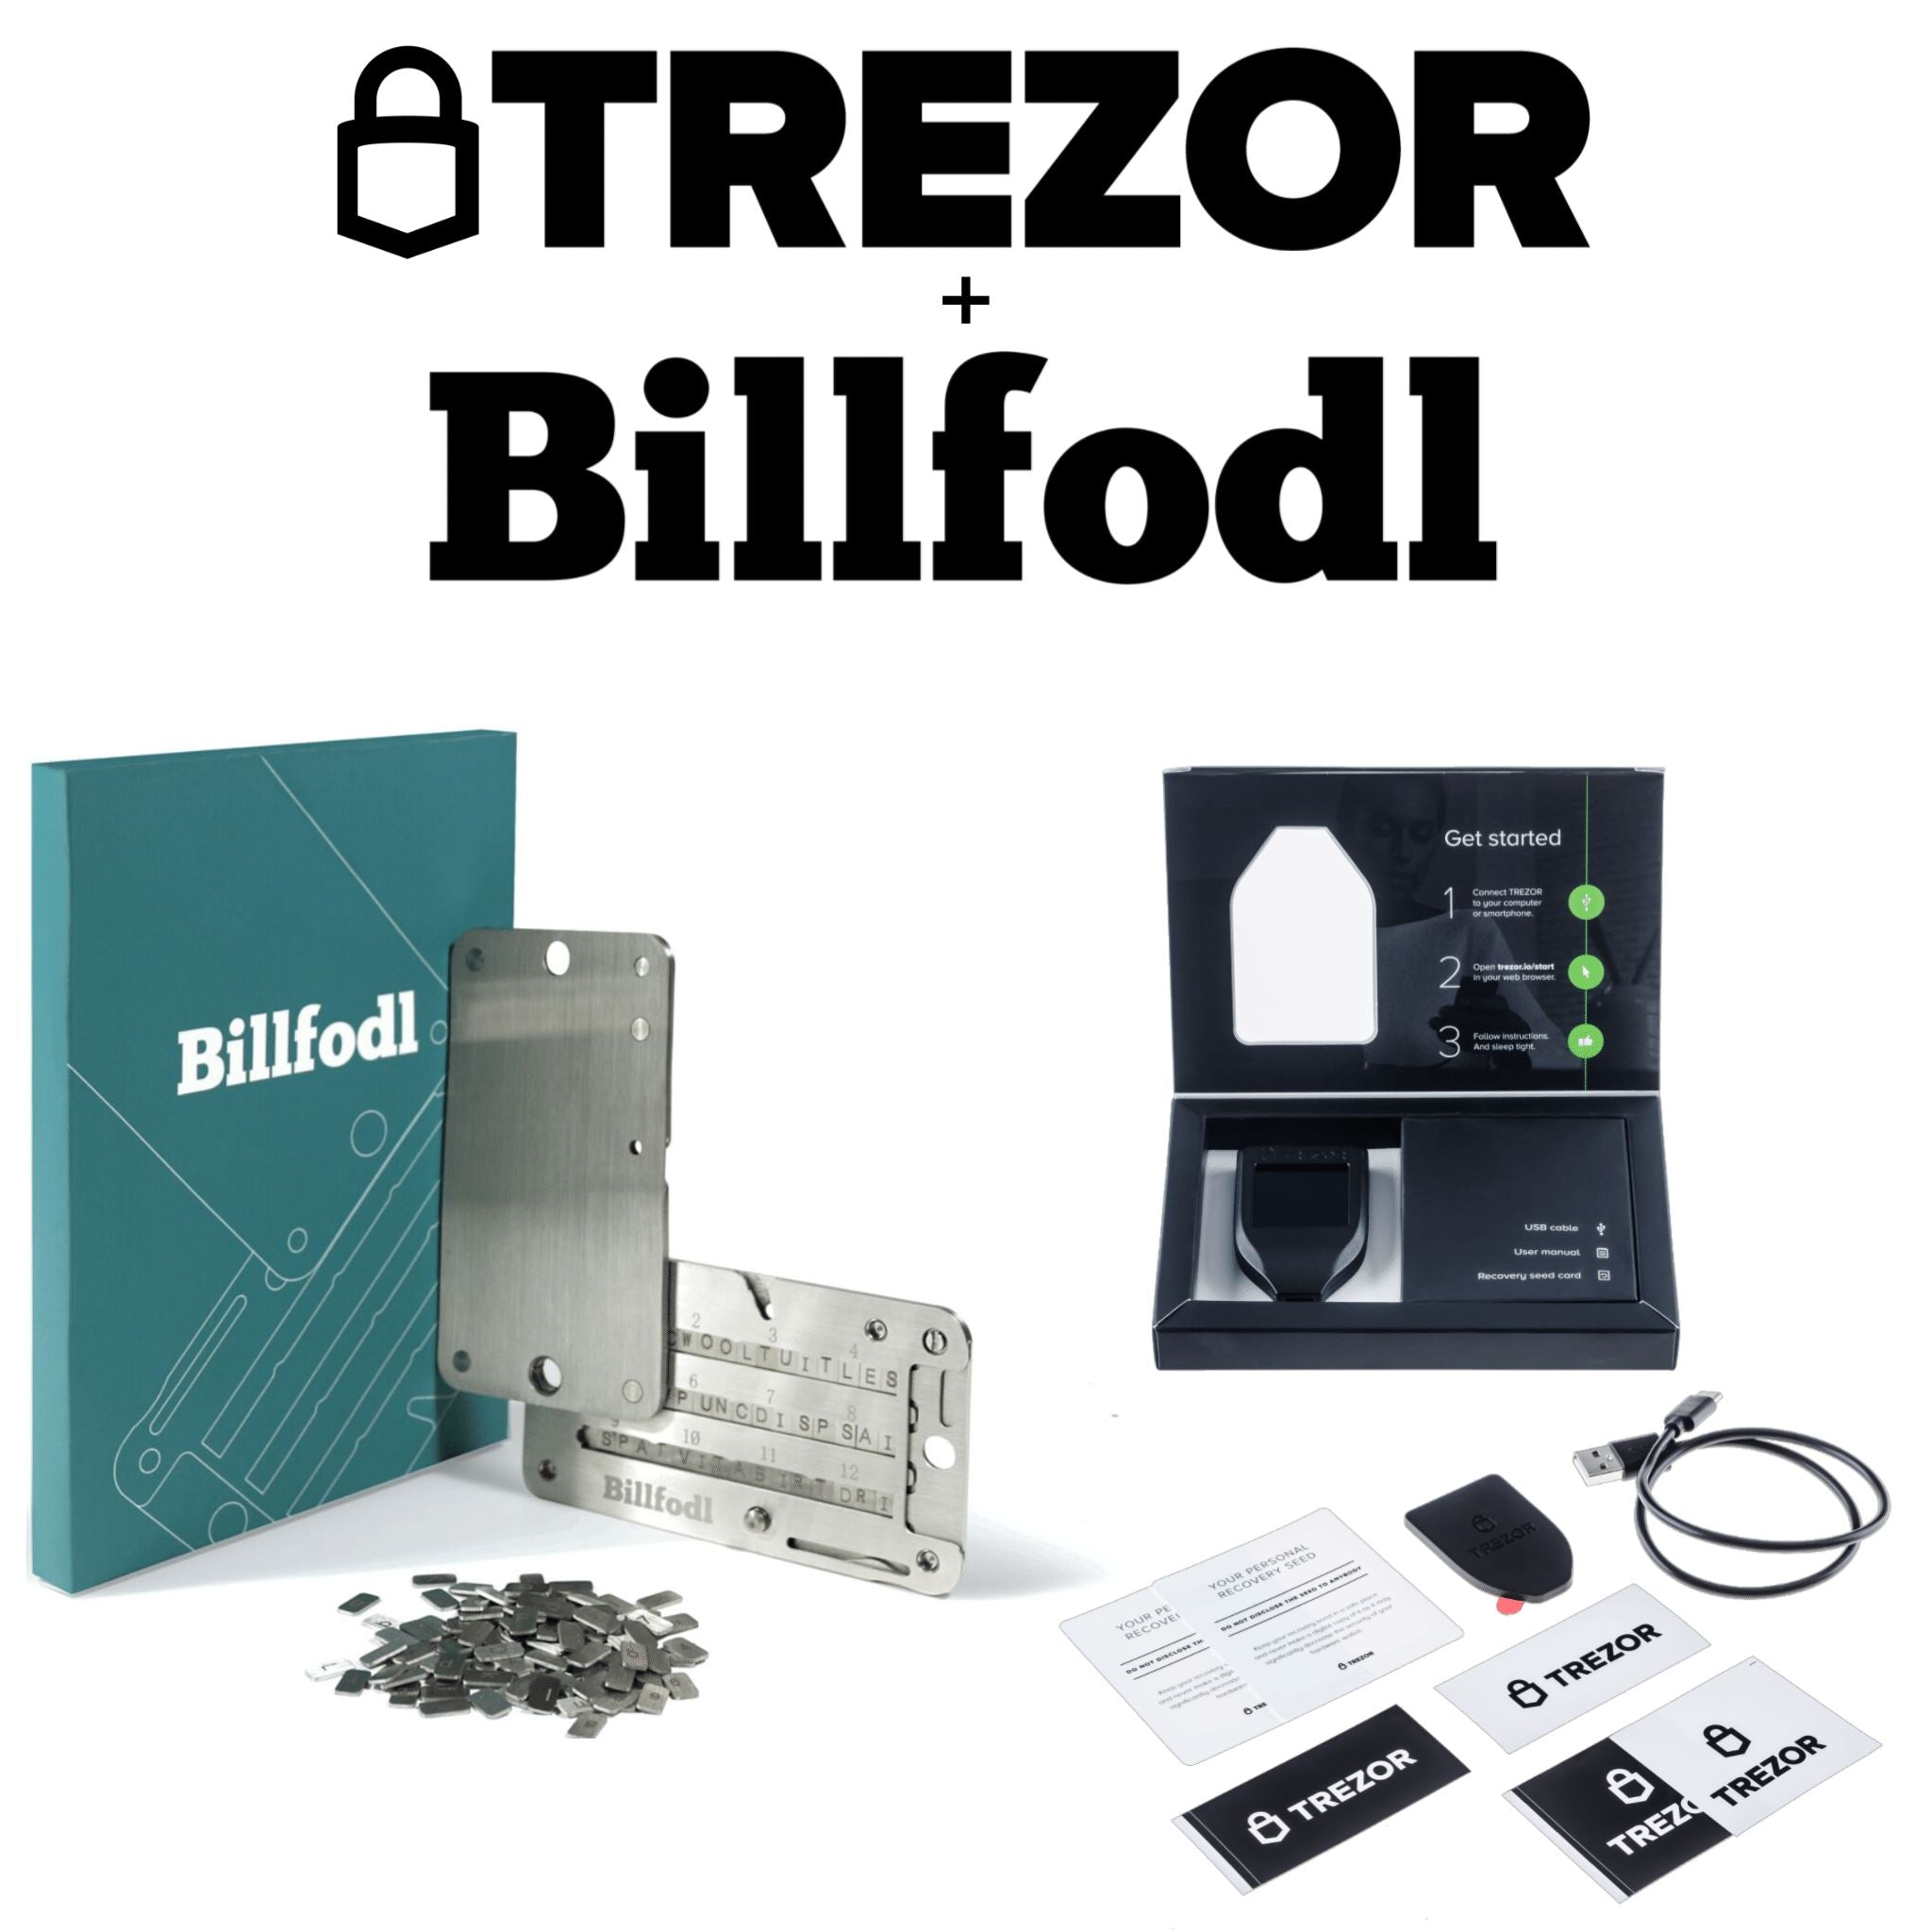 Trezor Model T + Billfodl